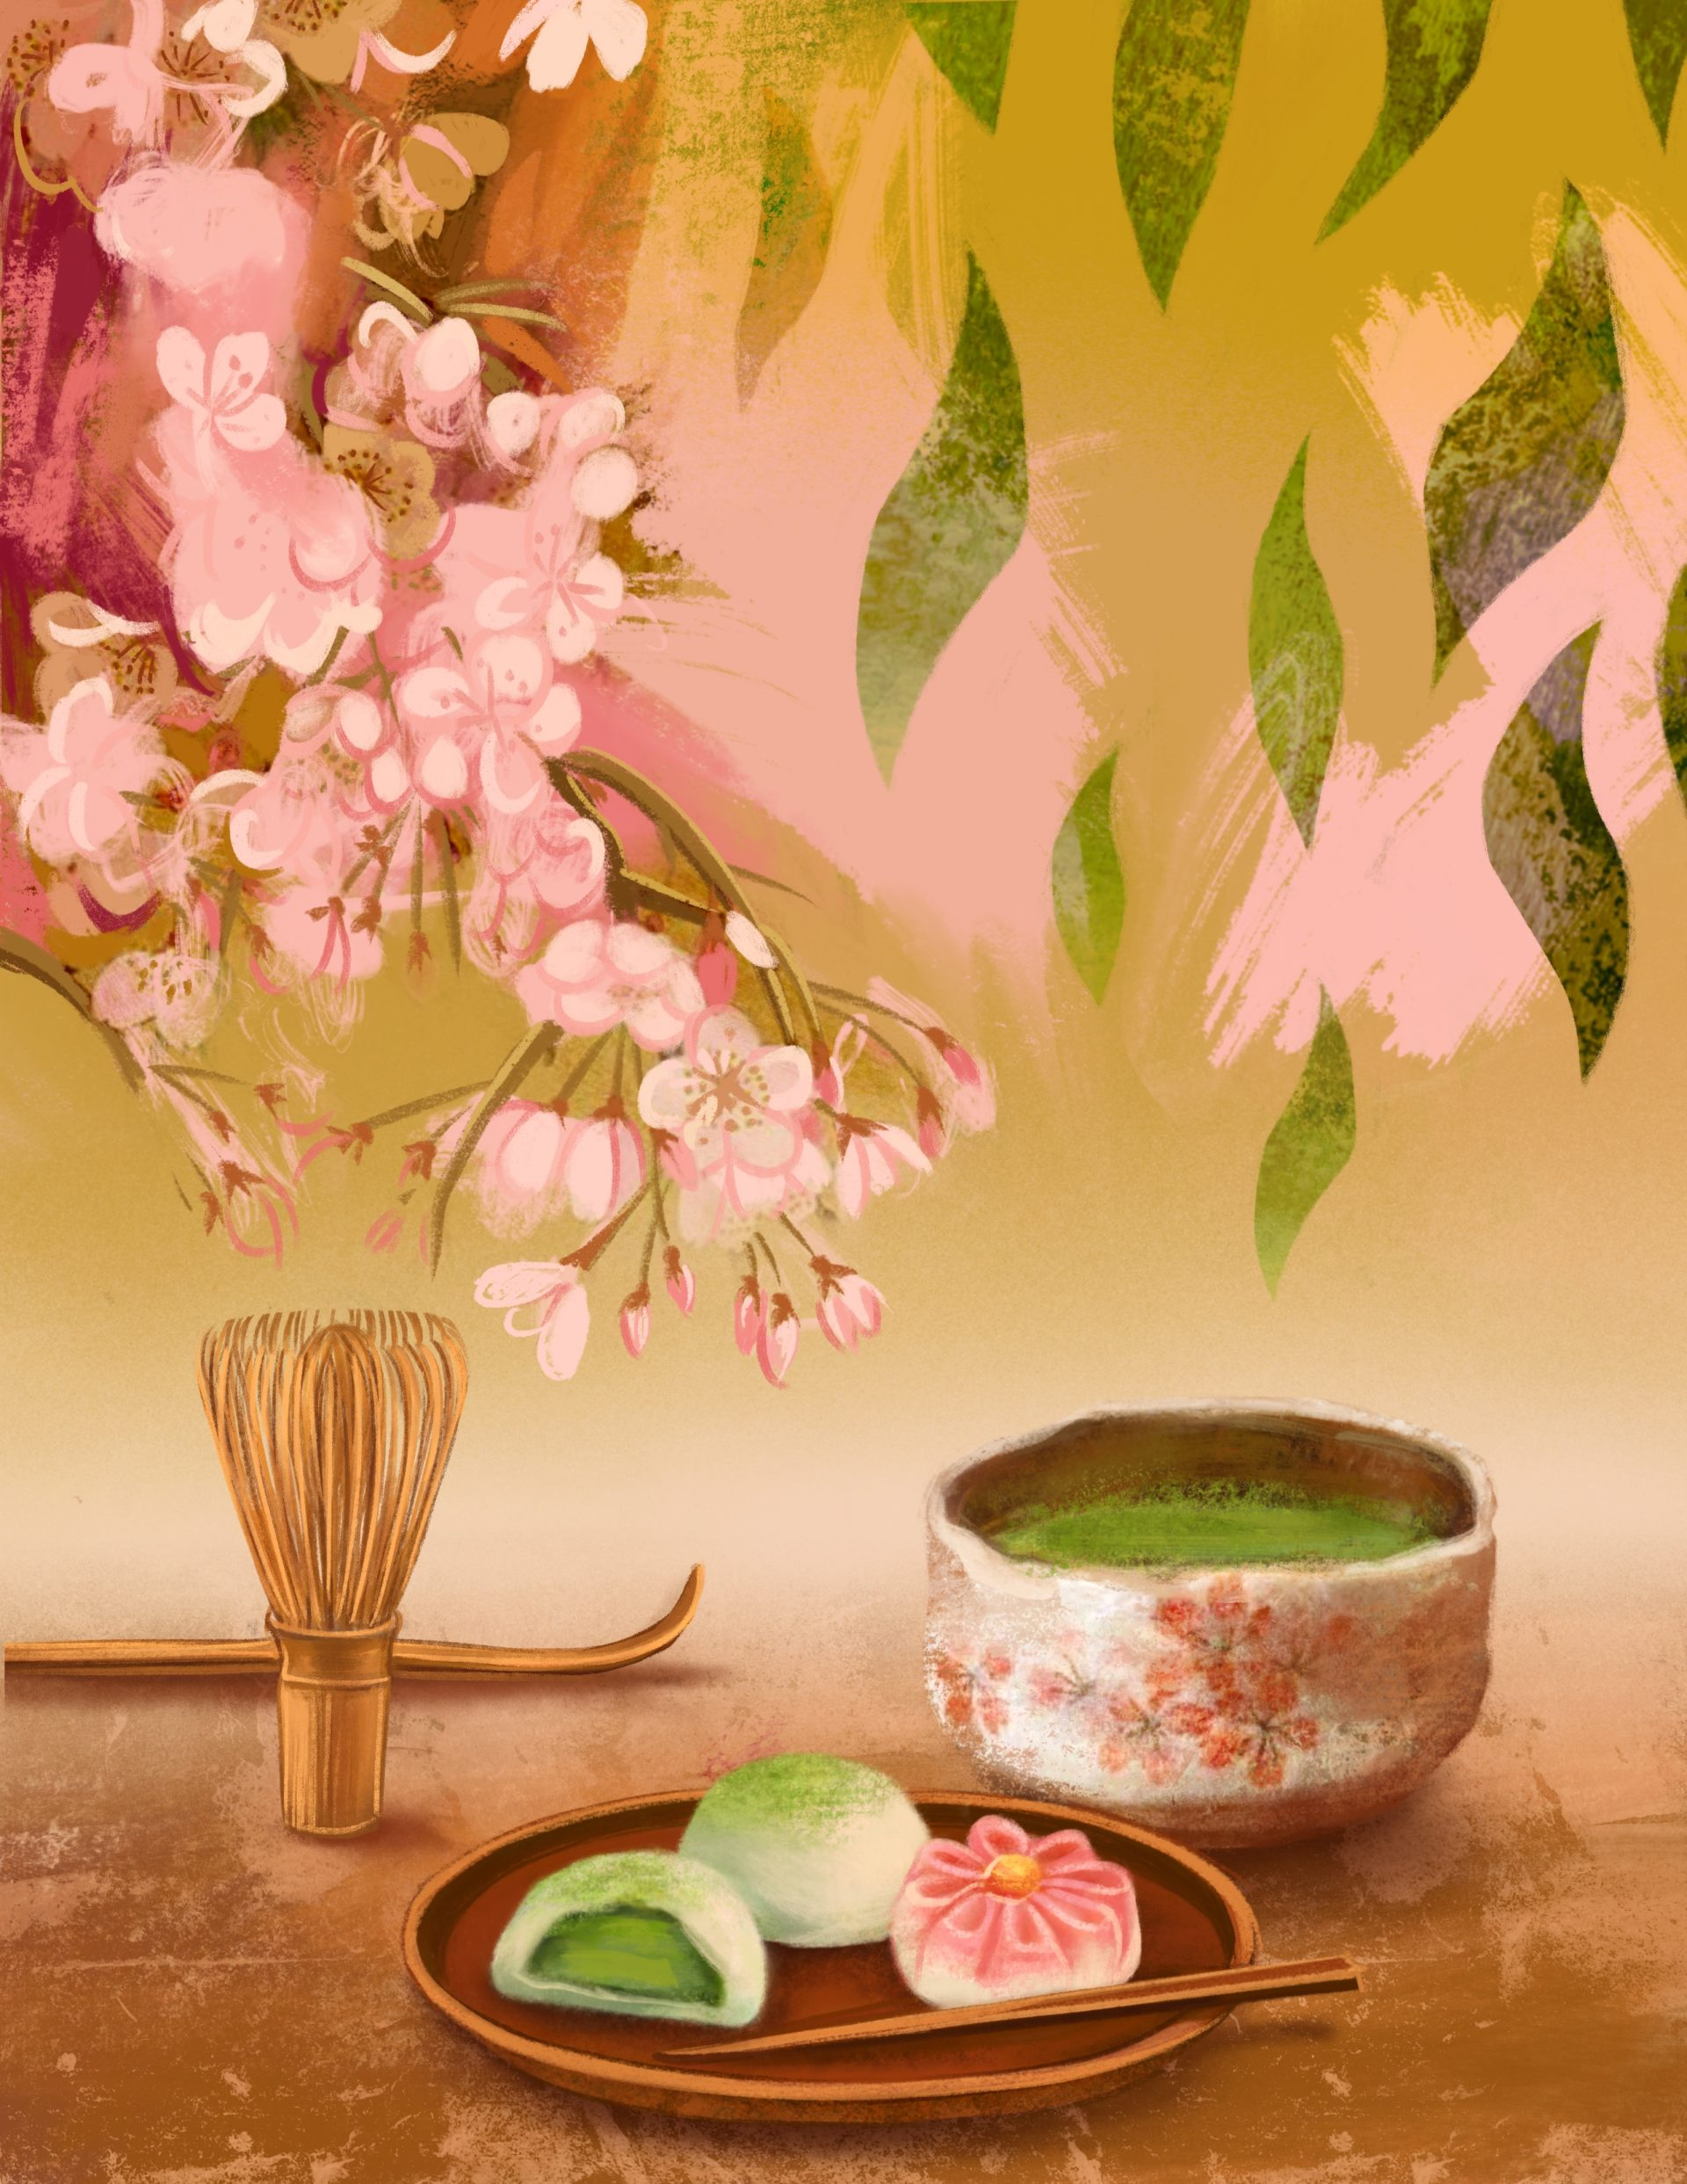 Matcha tea set illustration, Japonism